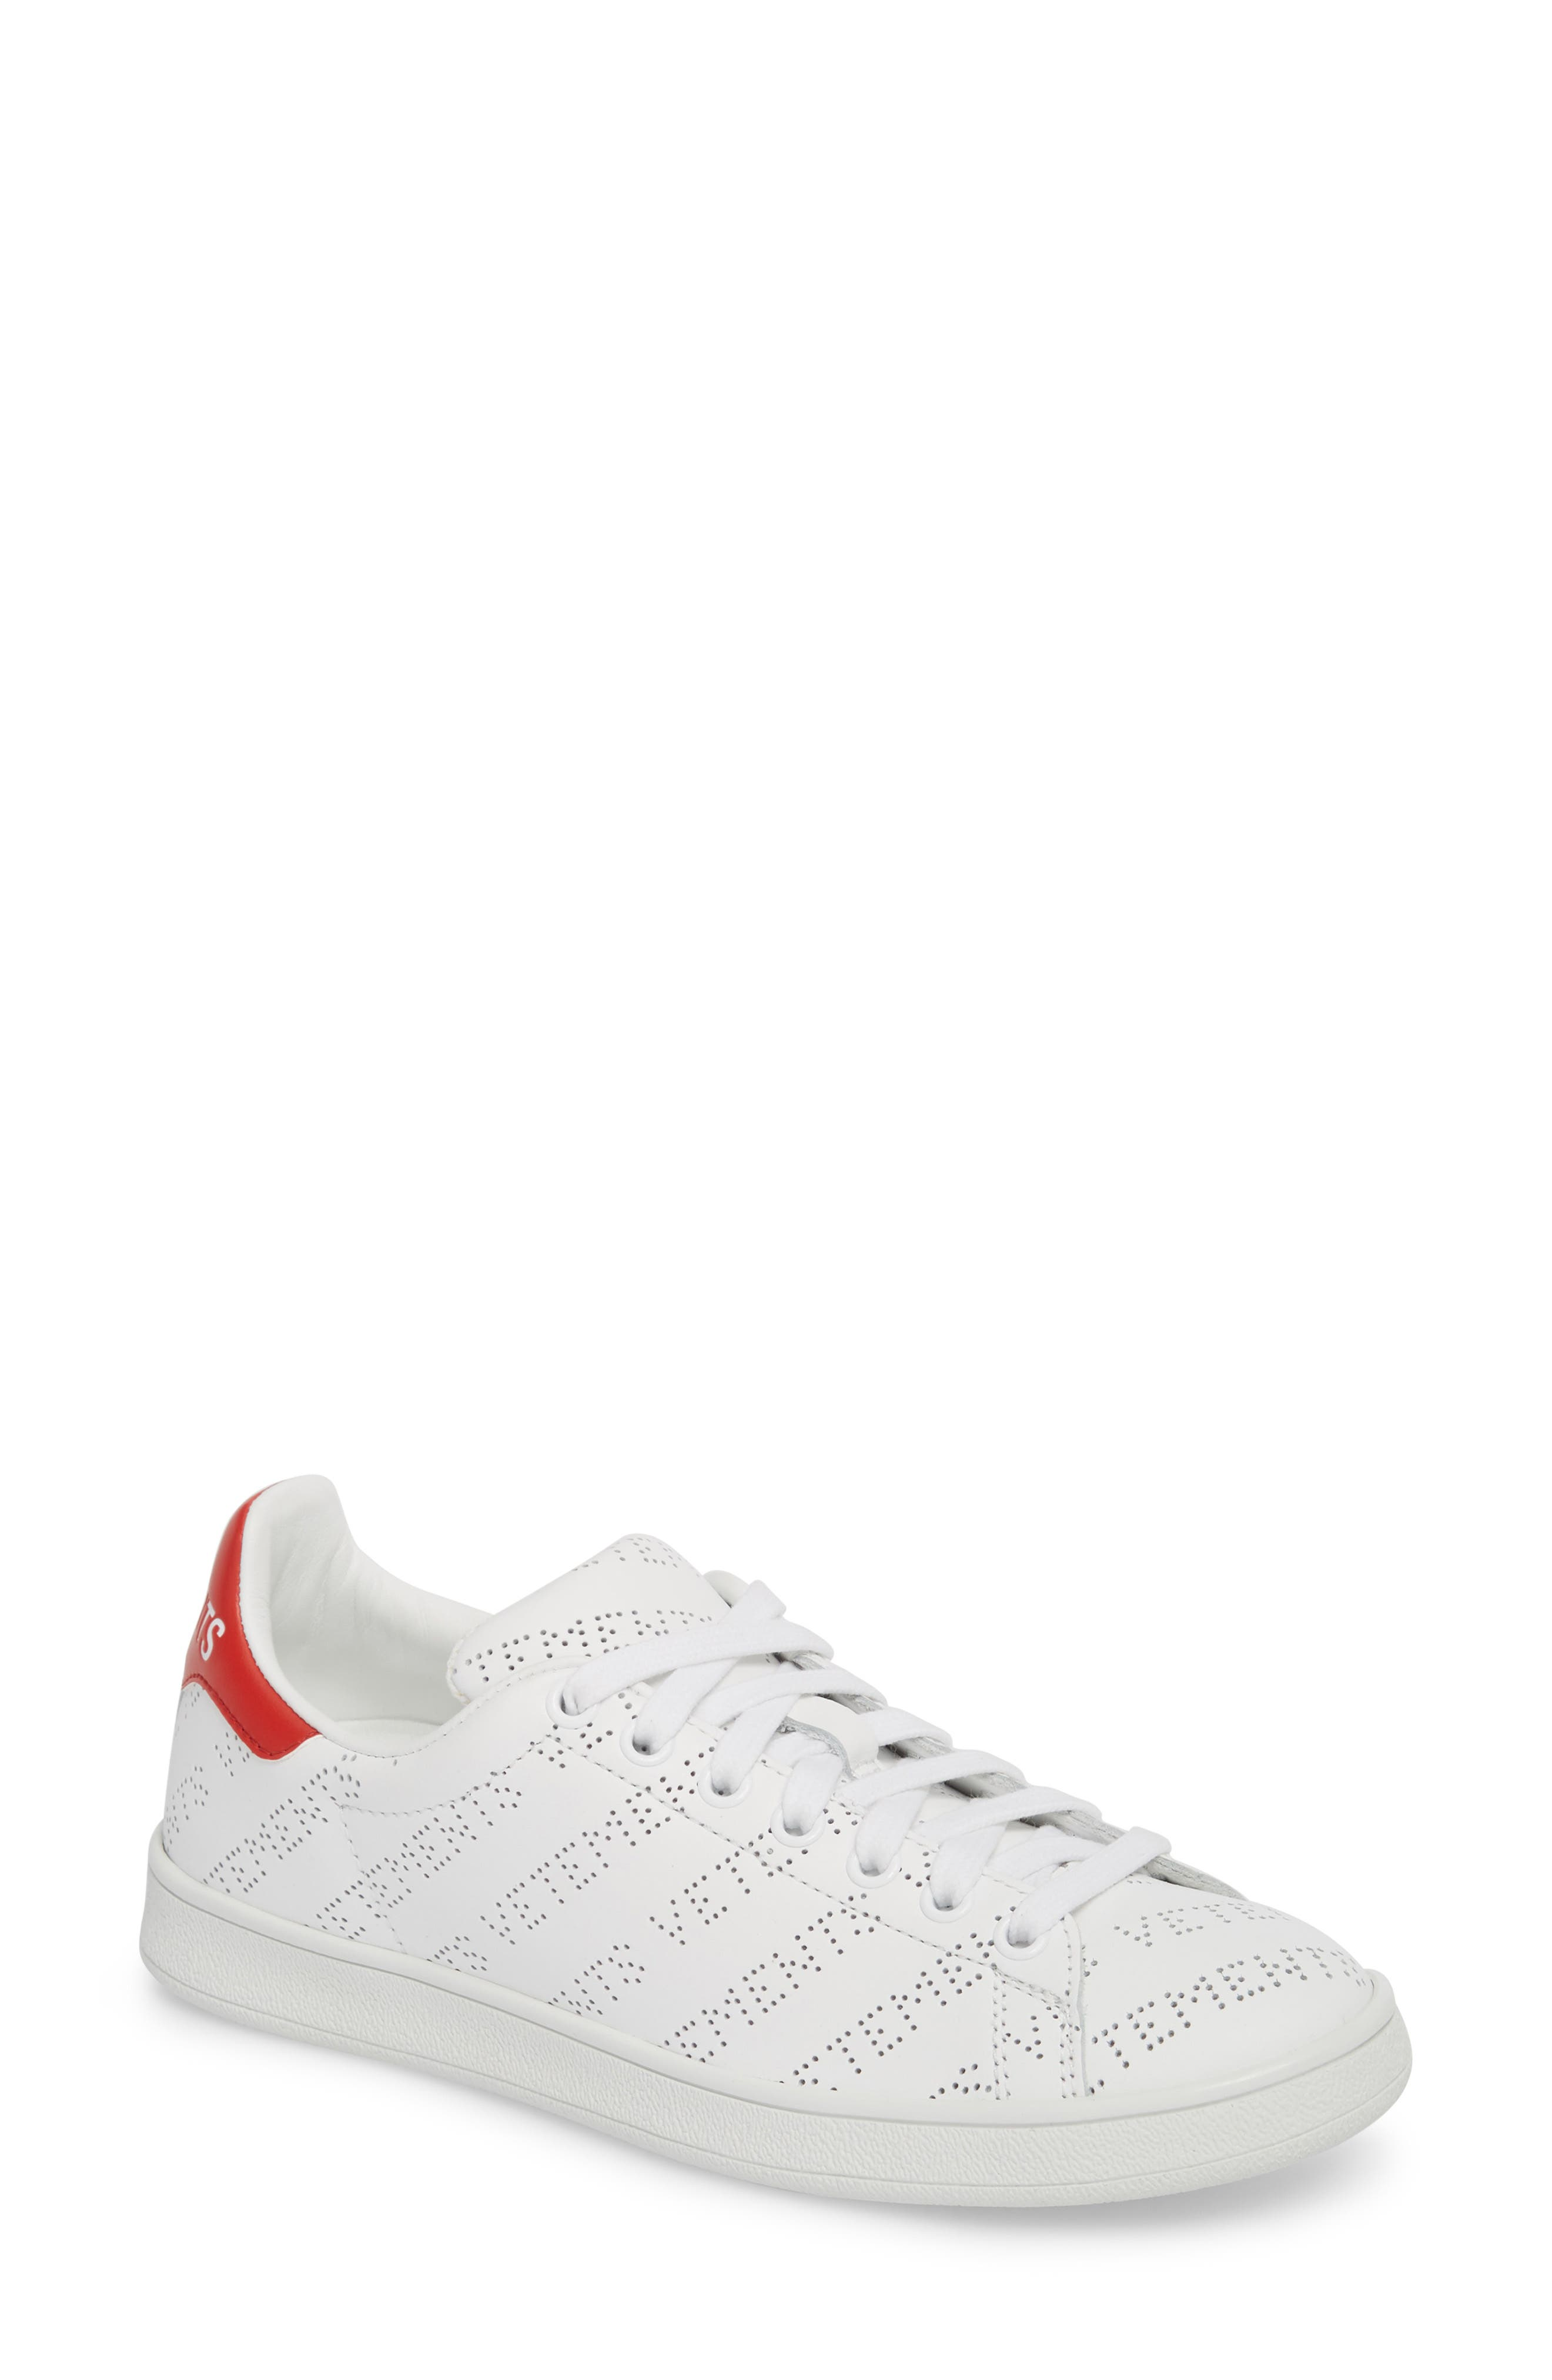 Perforated Sneaker,                         Main,                         color, WHITE RED